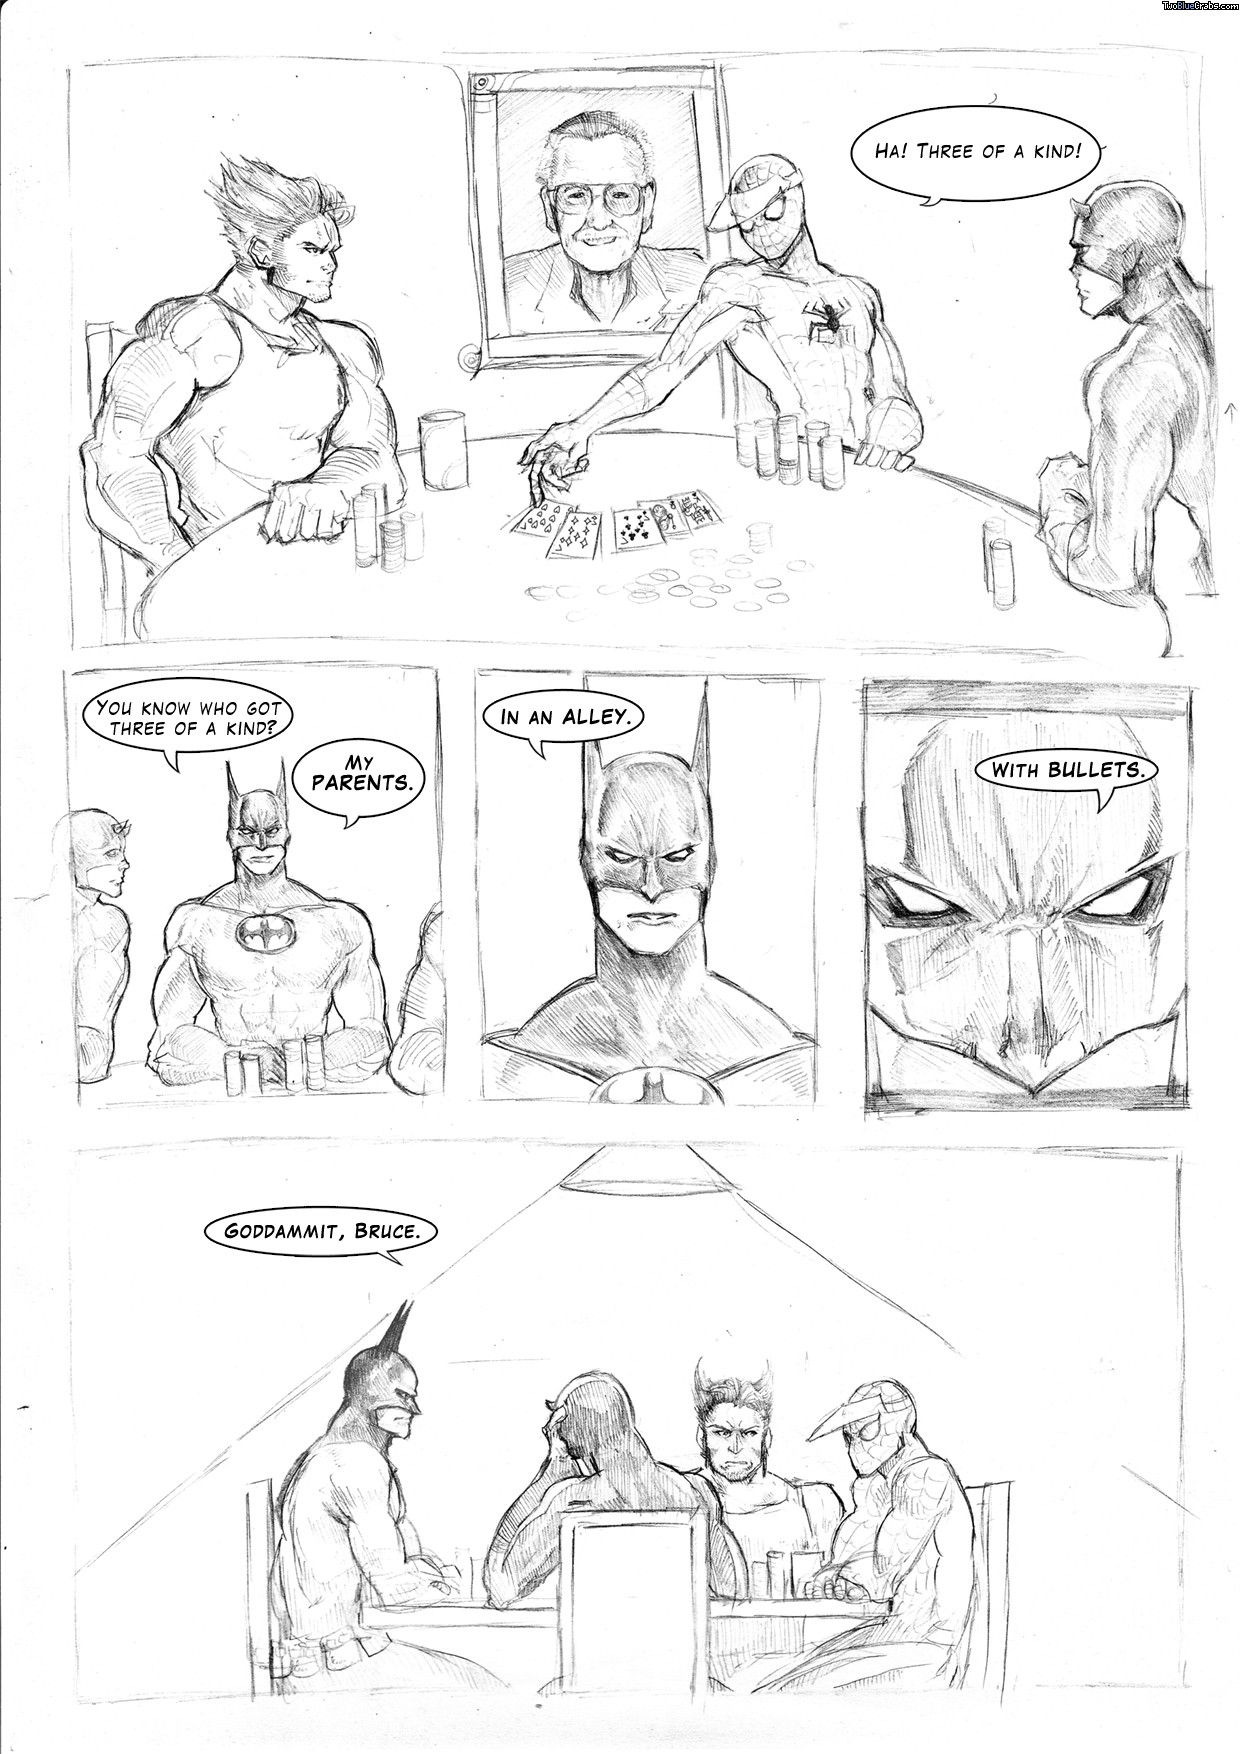 batman-is-kind-of-a-downer